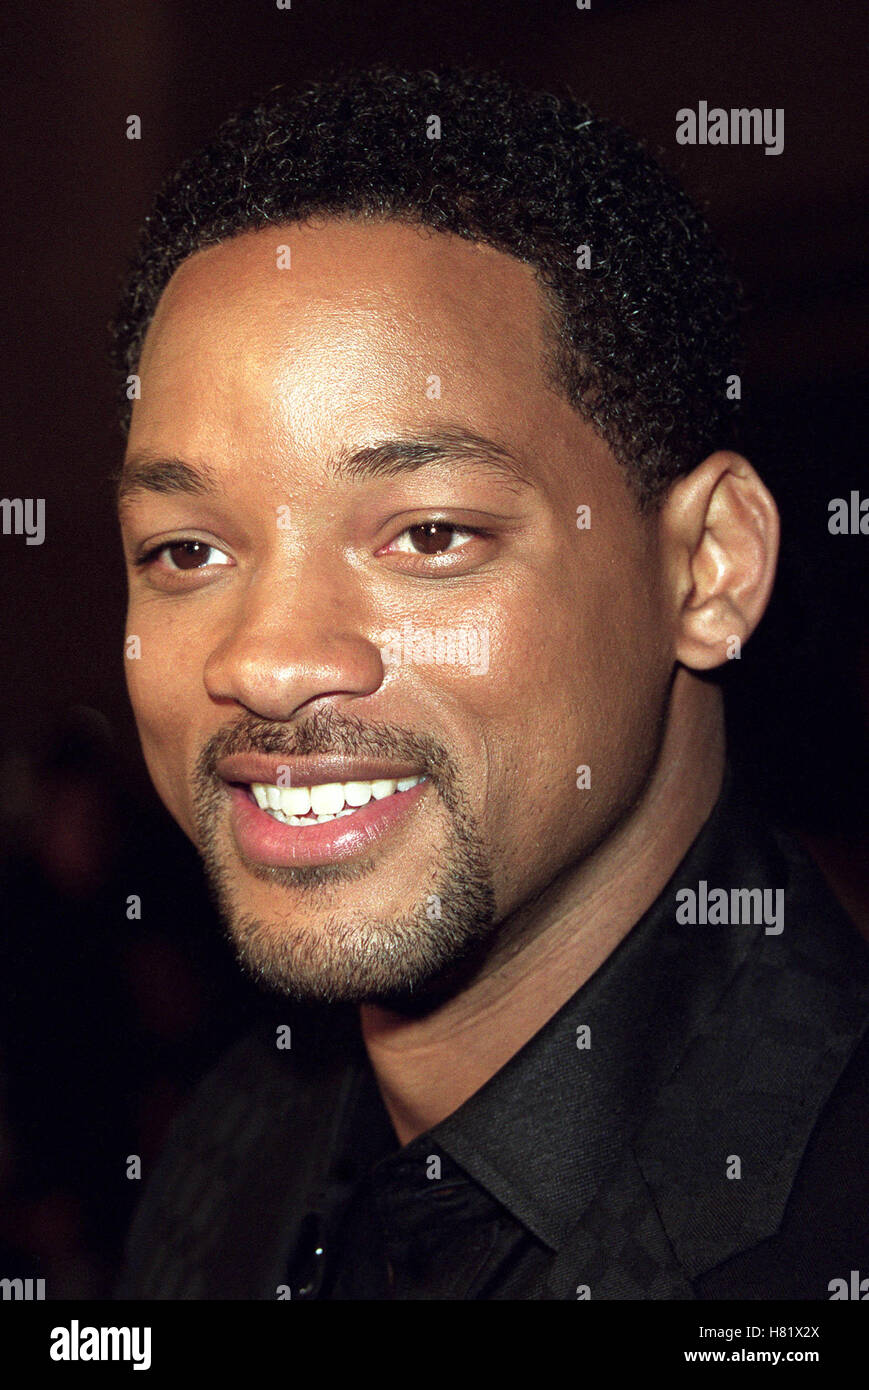 WILL SMITH MUHAMMAD ALI'S 60TH BIRTHDAY KODAK THEATRE LA USA 12 January 2002 - Stock Image